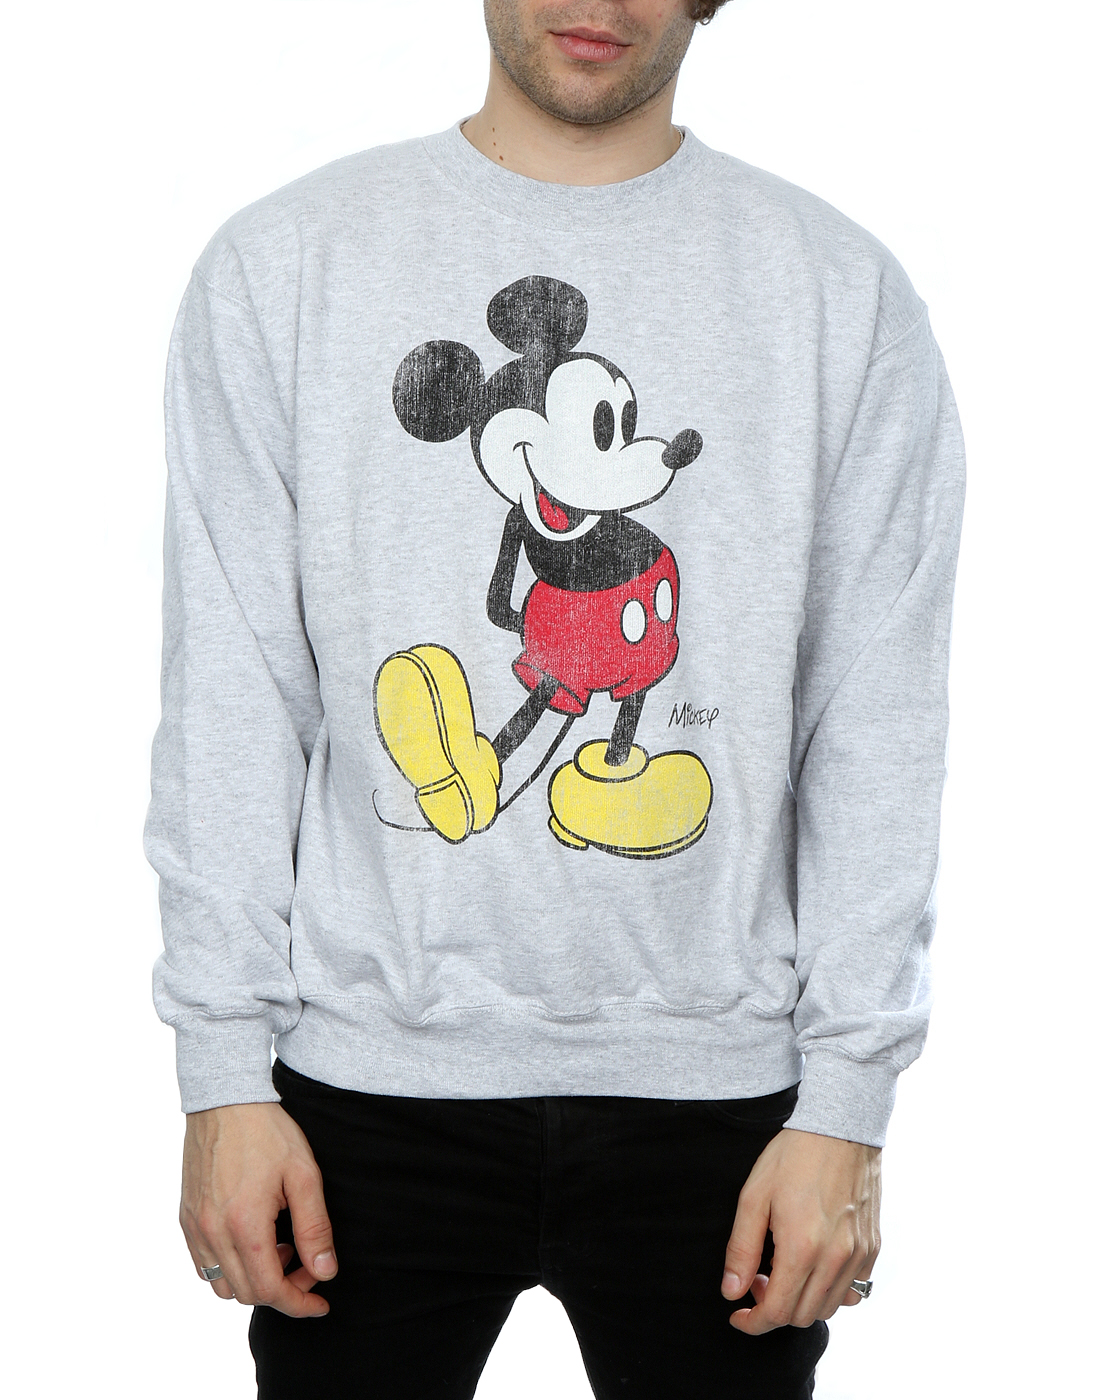 Shop for mickey mouse sweater online at Target. Free shipping on purchases over $35 and save 5% every day with your Target REDcard.